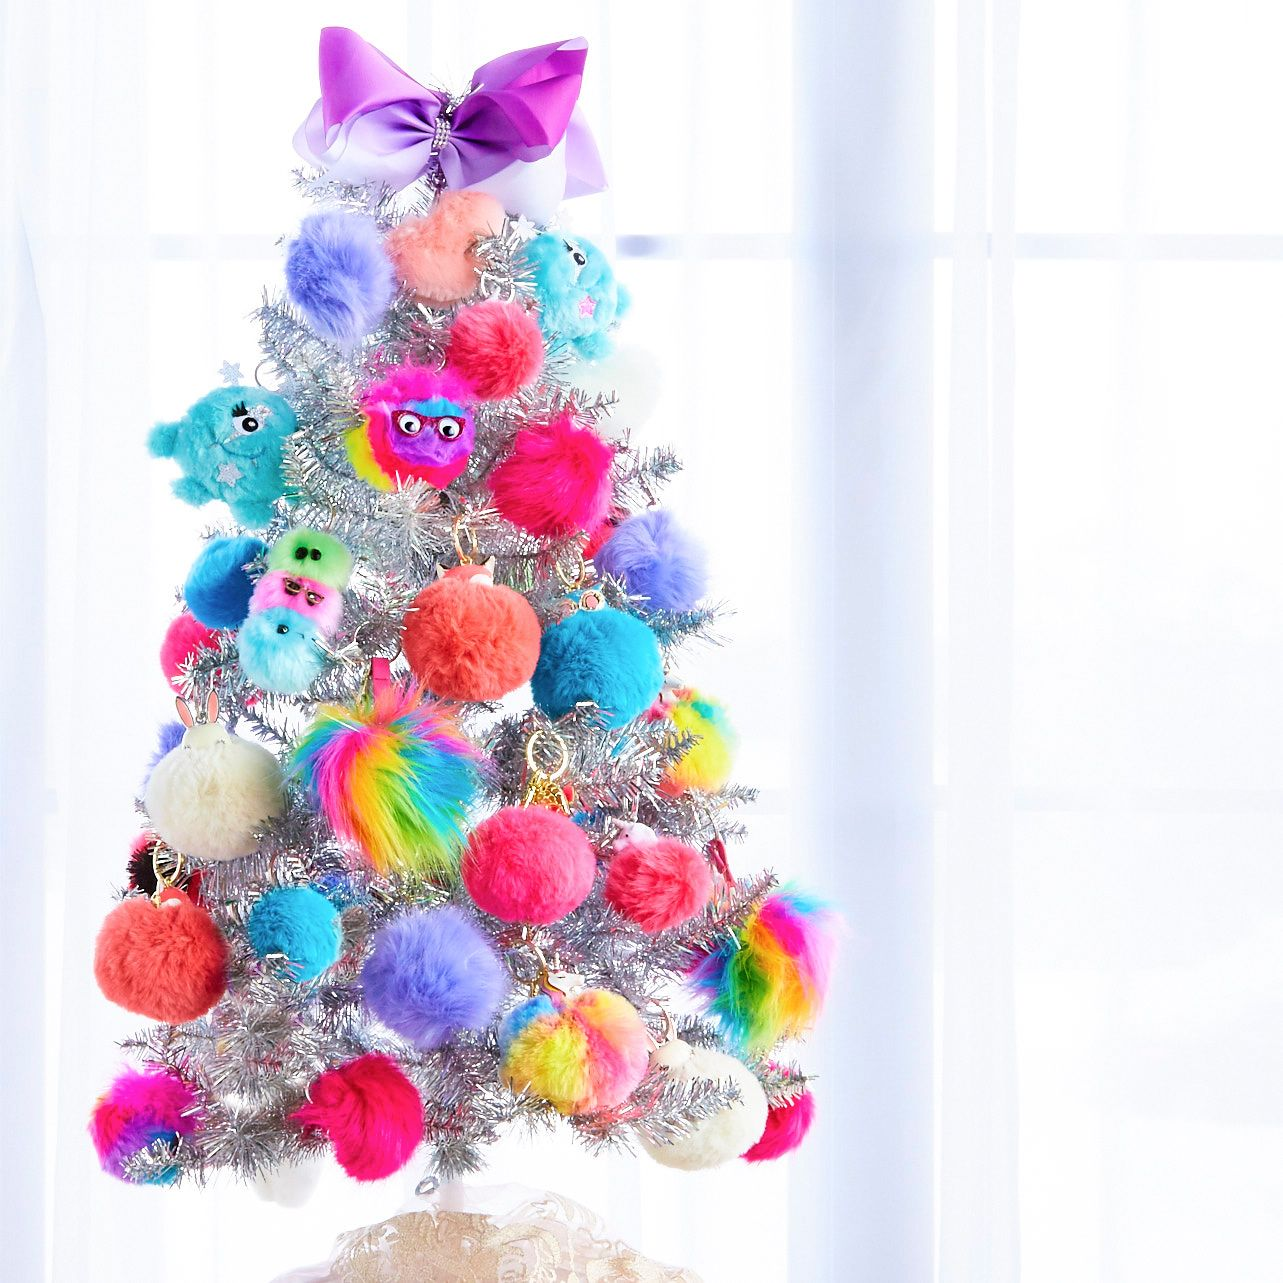 Christmas Tree Decorations Fluffy Unicorn Ornaments Fur Ball Pom Pom Horse Pendant New Year Gifts Decorations 2019 Decorate Your Tree With Our Assortment Of Pom Poms